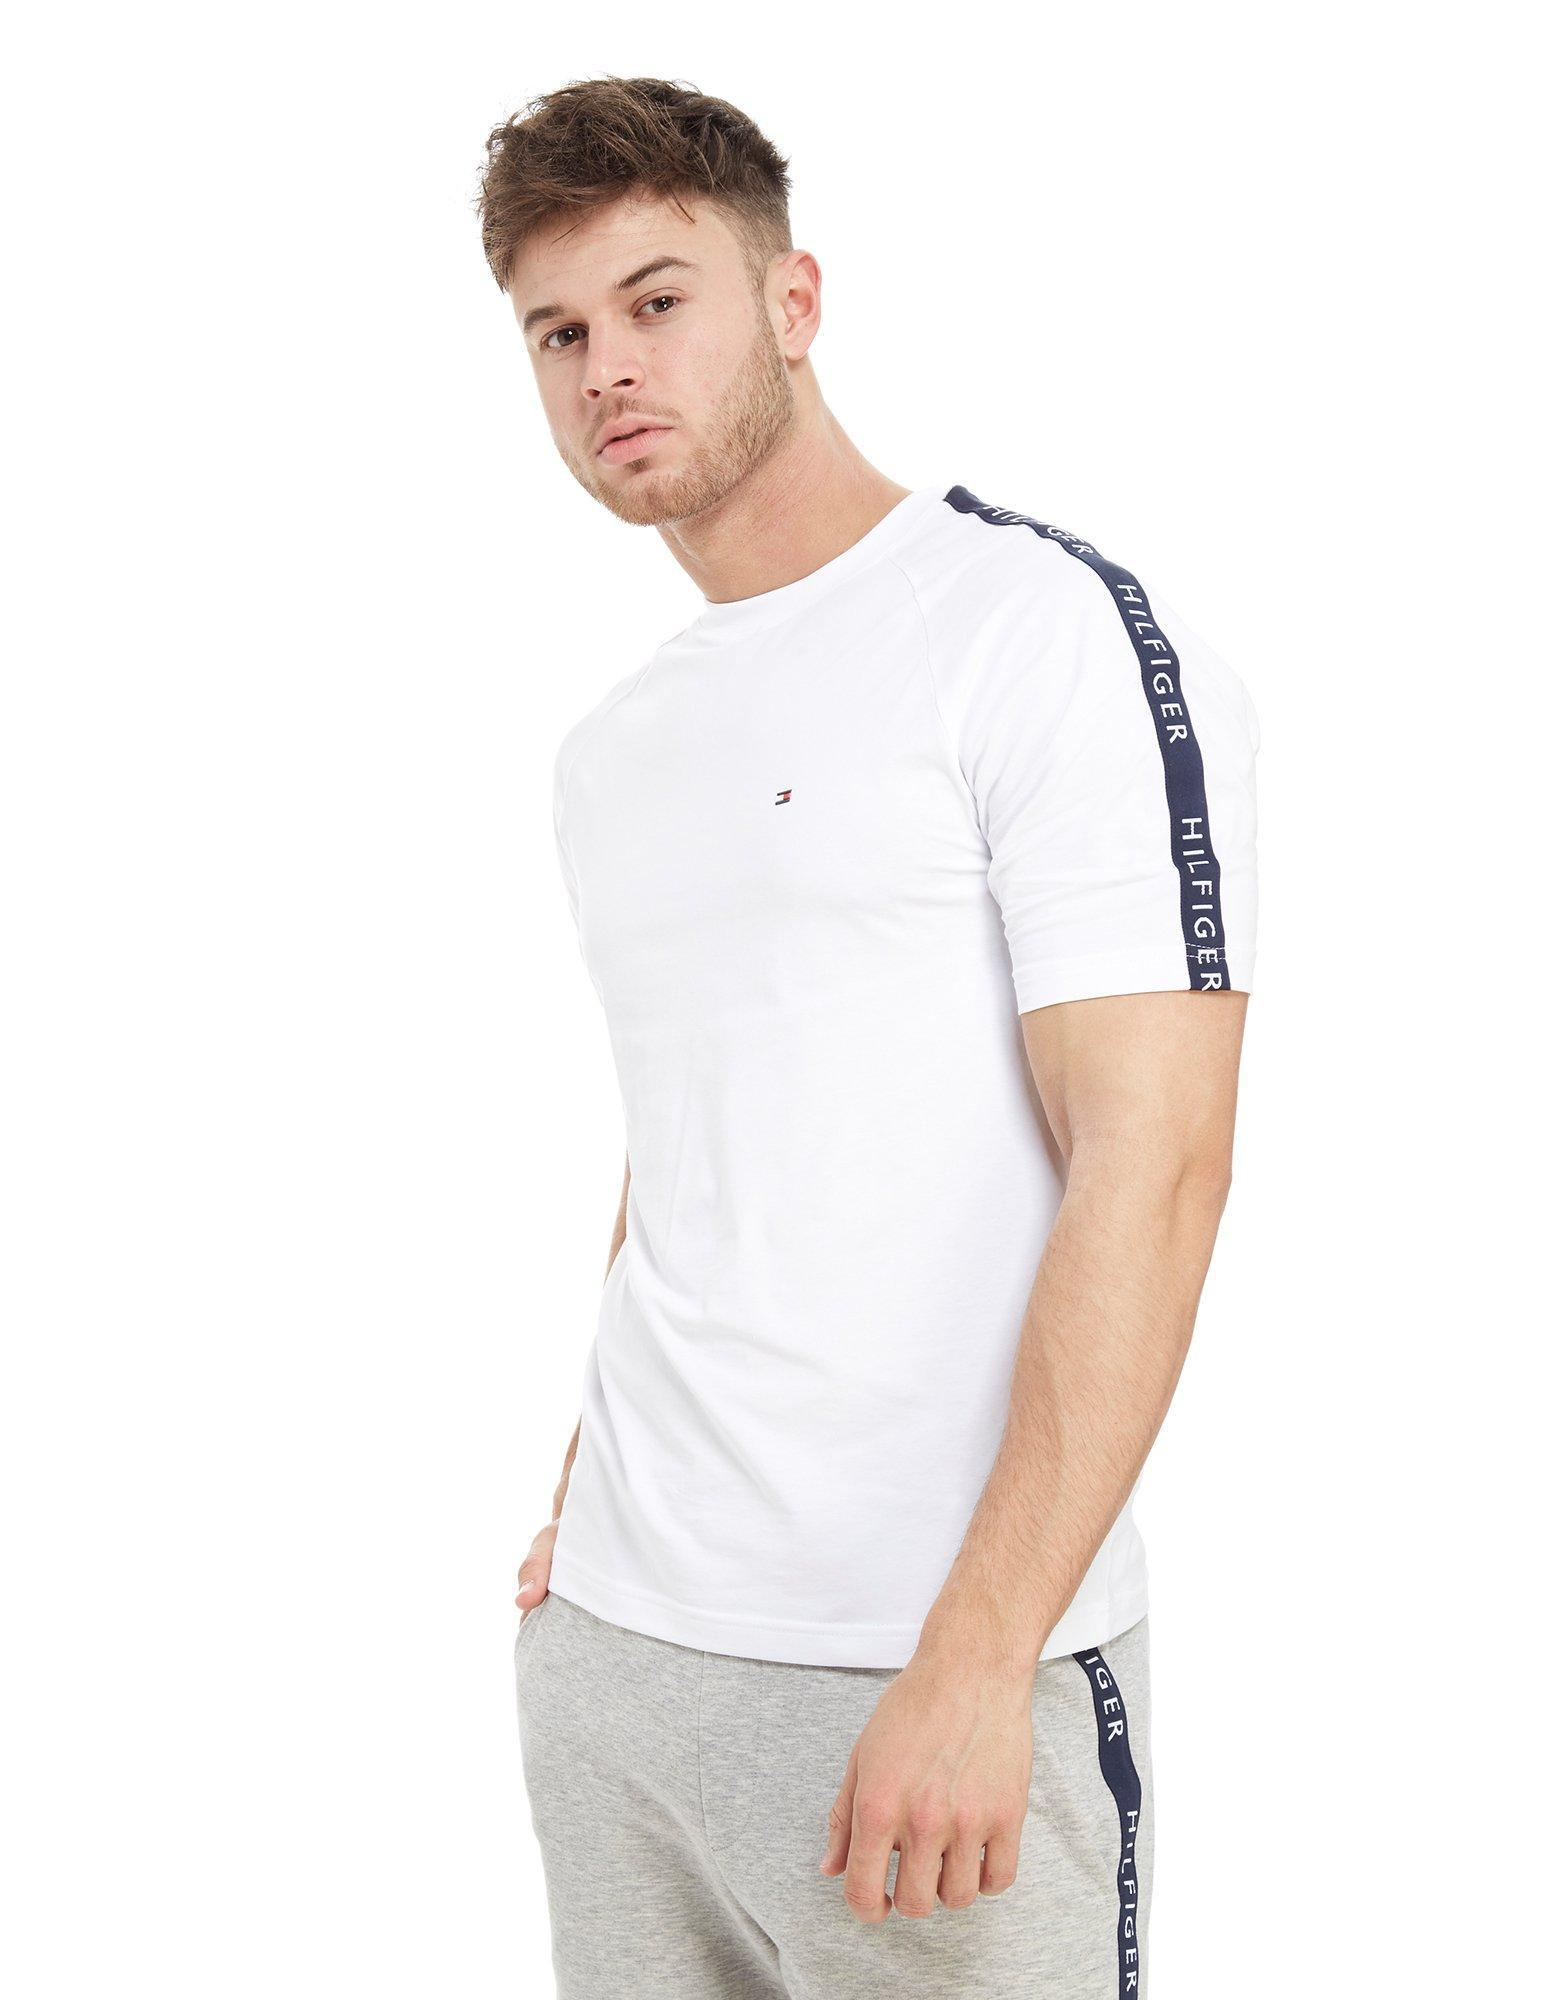 42b1504c Tommy Hilfiger Side Tape T-shirt in White for Men - Lyst